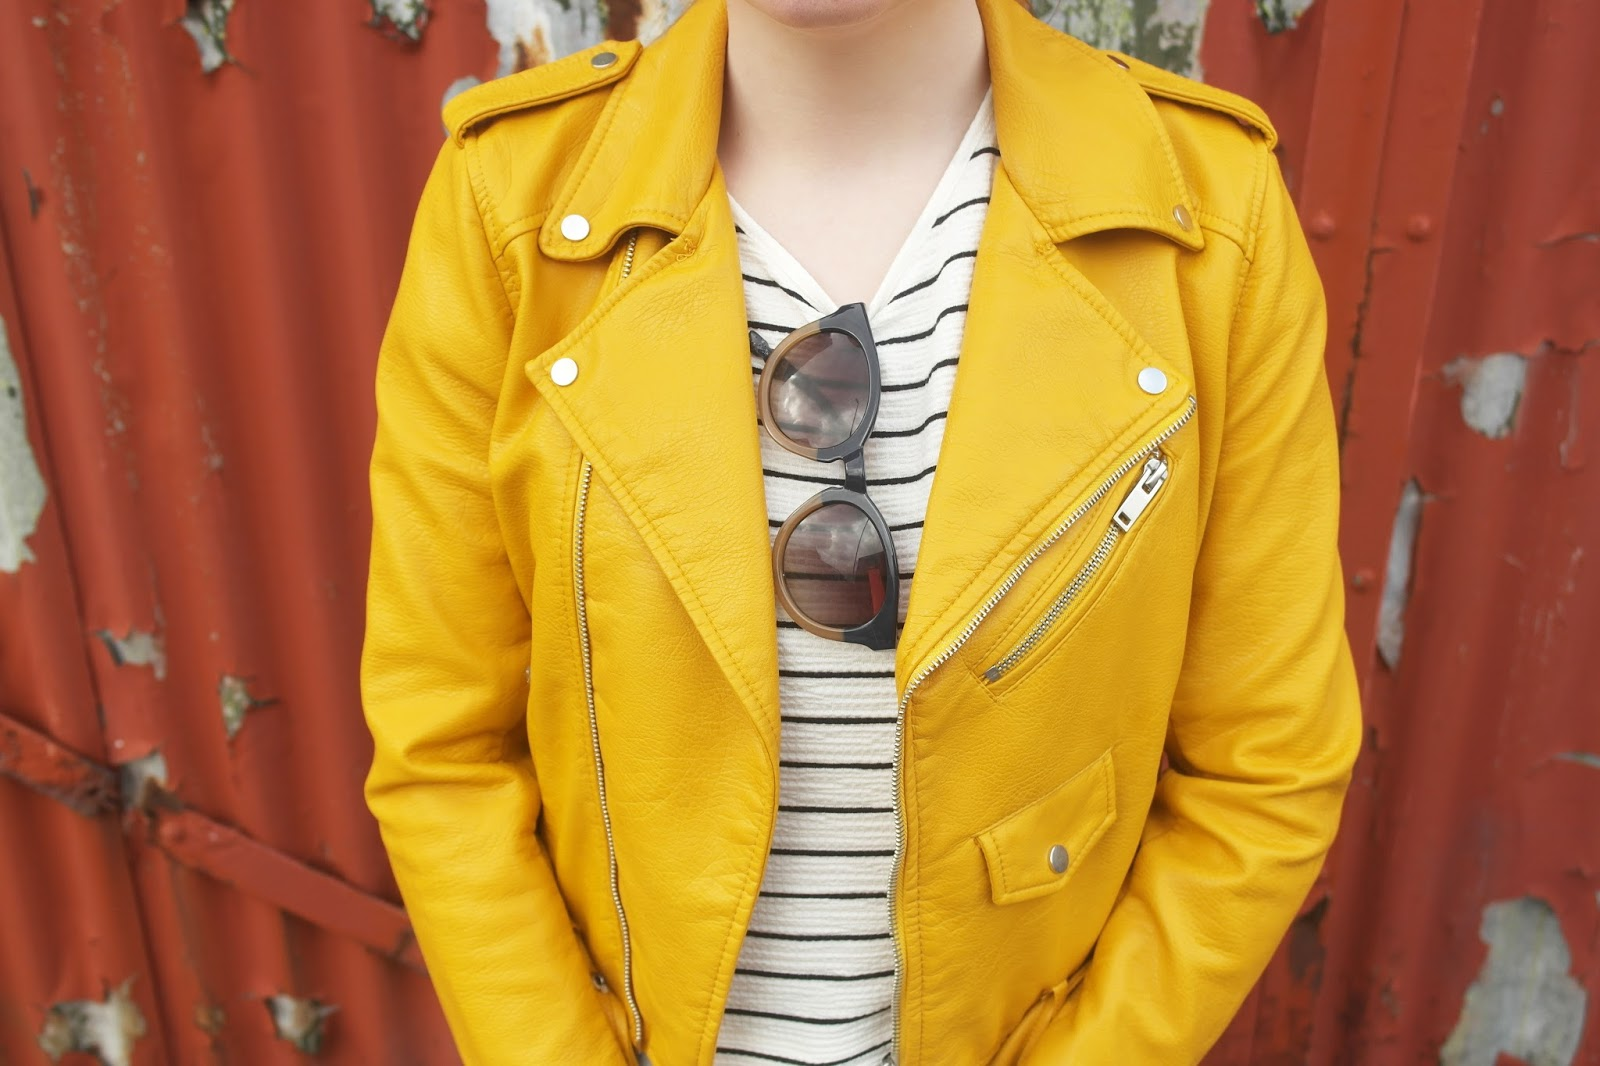 Leather jacket yellow zara - I Styled It With This Sheer Black And White Top Also From Zara Which Fits Perfectly Against The Yellow As I Didn T Want Anything Too Harsh On It